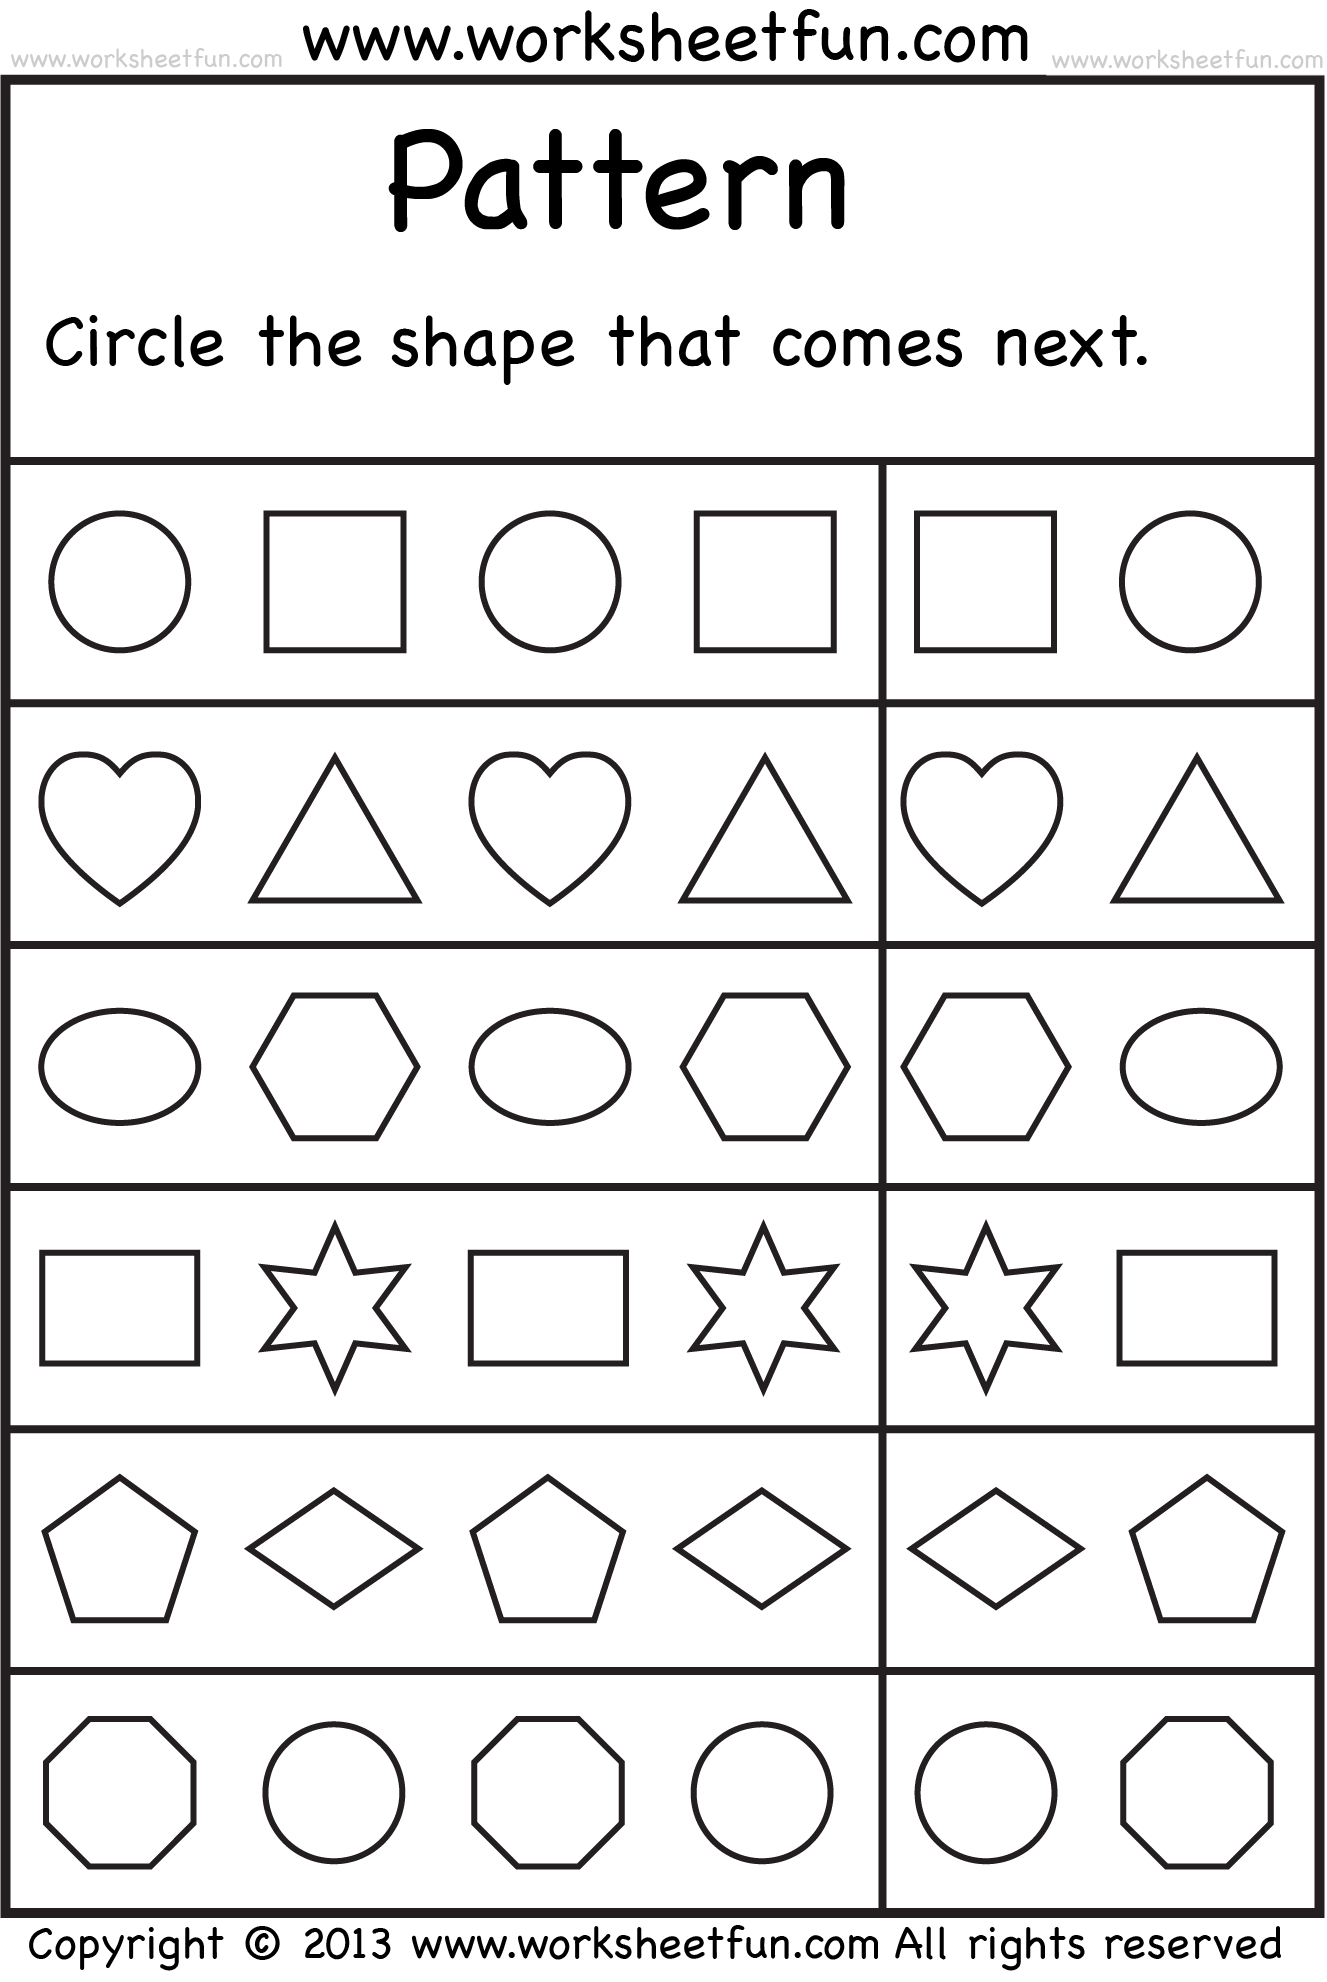 Proatmealus  Personable  Images About School Worksheets On Pinterest  Number Words  With Fetching  Images About School Worksheets On Pinterest  Number Words Alphabet Worksheets And Free Printable Kindergarten Worksheets With Lovely Adjective Worksheet First Grade Also Th Grade Exponents Worksheets In Addition Math Worksheets Proportions And Balancing Chemical Equations Worksheet And Answers As Well As Area Printable Worksheets Additionally Free Fire Safety Worksheets From Pinterestcom With Proatmealus  Fetching  Images About School Worksheets On Pinterest  Number Words  With Lovely  Images About School Worksheets On Pinterest  Number Words Alphabet Worksheets And Free Printable Kindergarten Worksheets And Personable Adjective Worksheet First Grade Also Th Grade Exponents Worksheets In Addition Math Worksheets Proportions From Pinterestcom